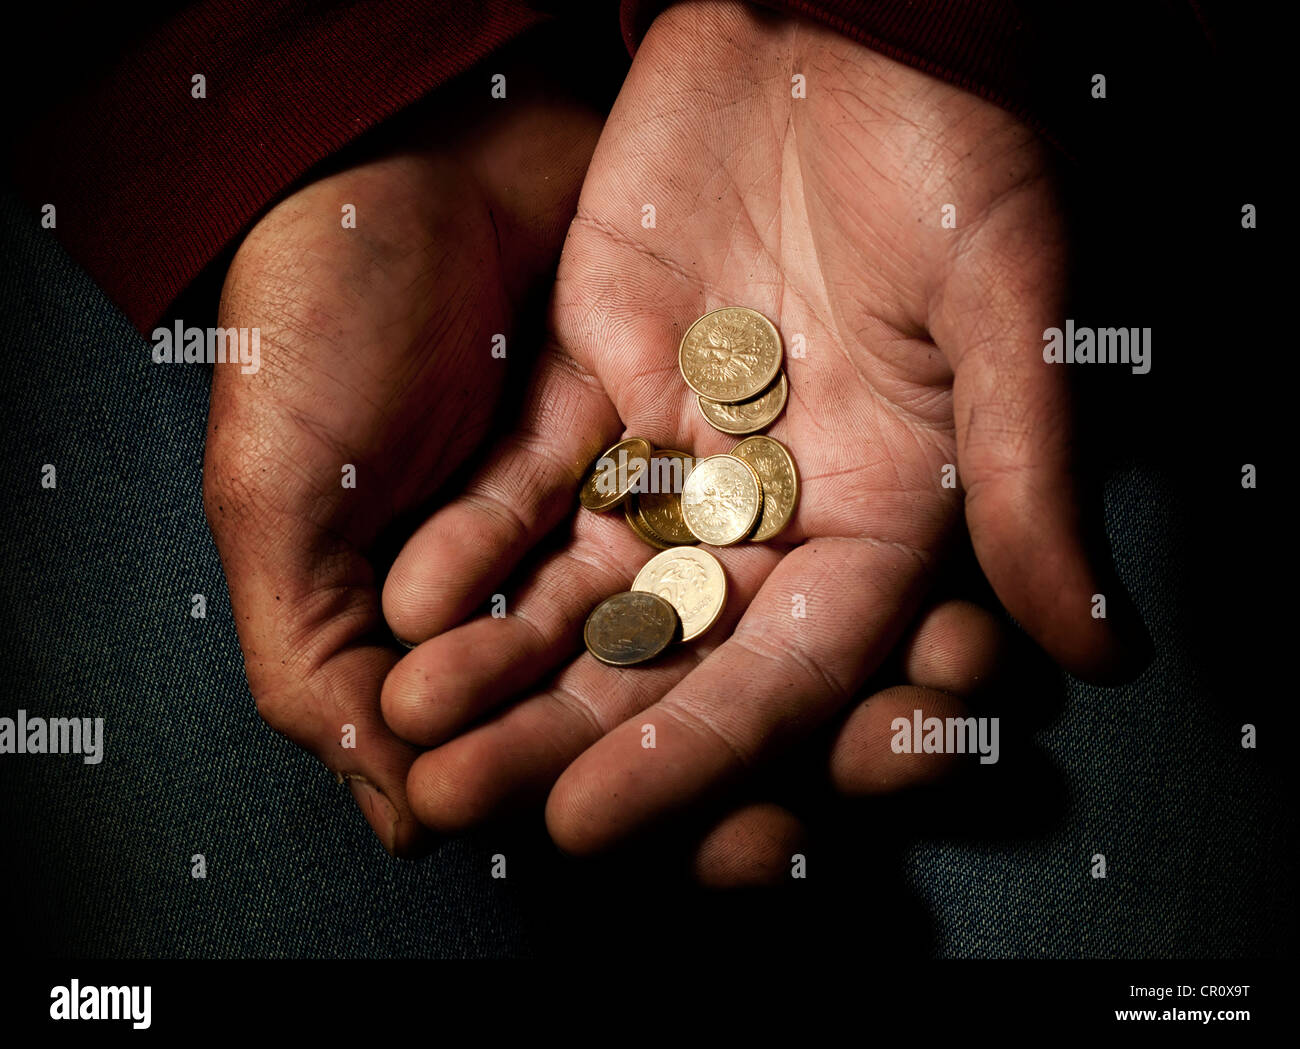 Poverty and misery last polish money in hand - Stock Image